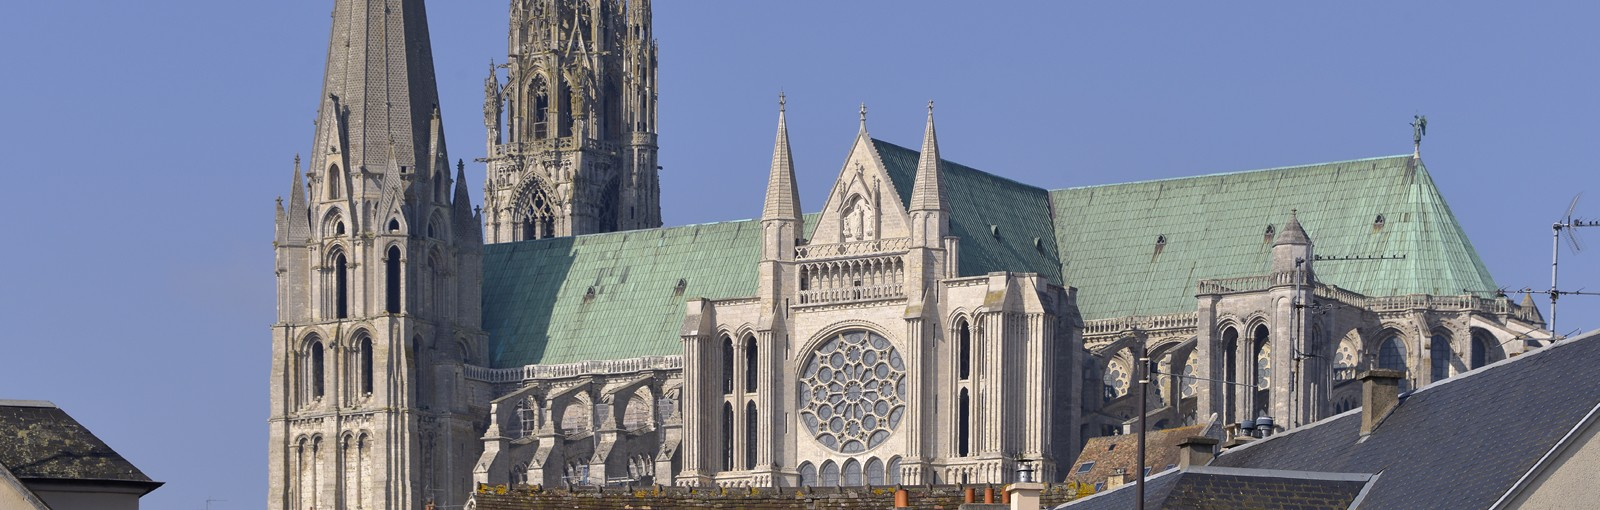 Tours Chartres town and cathedral - Half days - Day tours from Paris